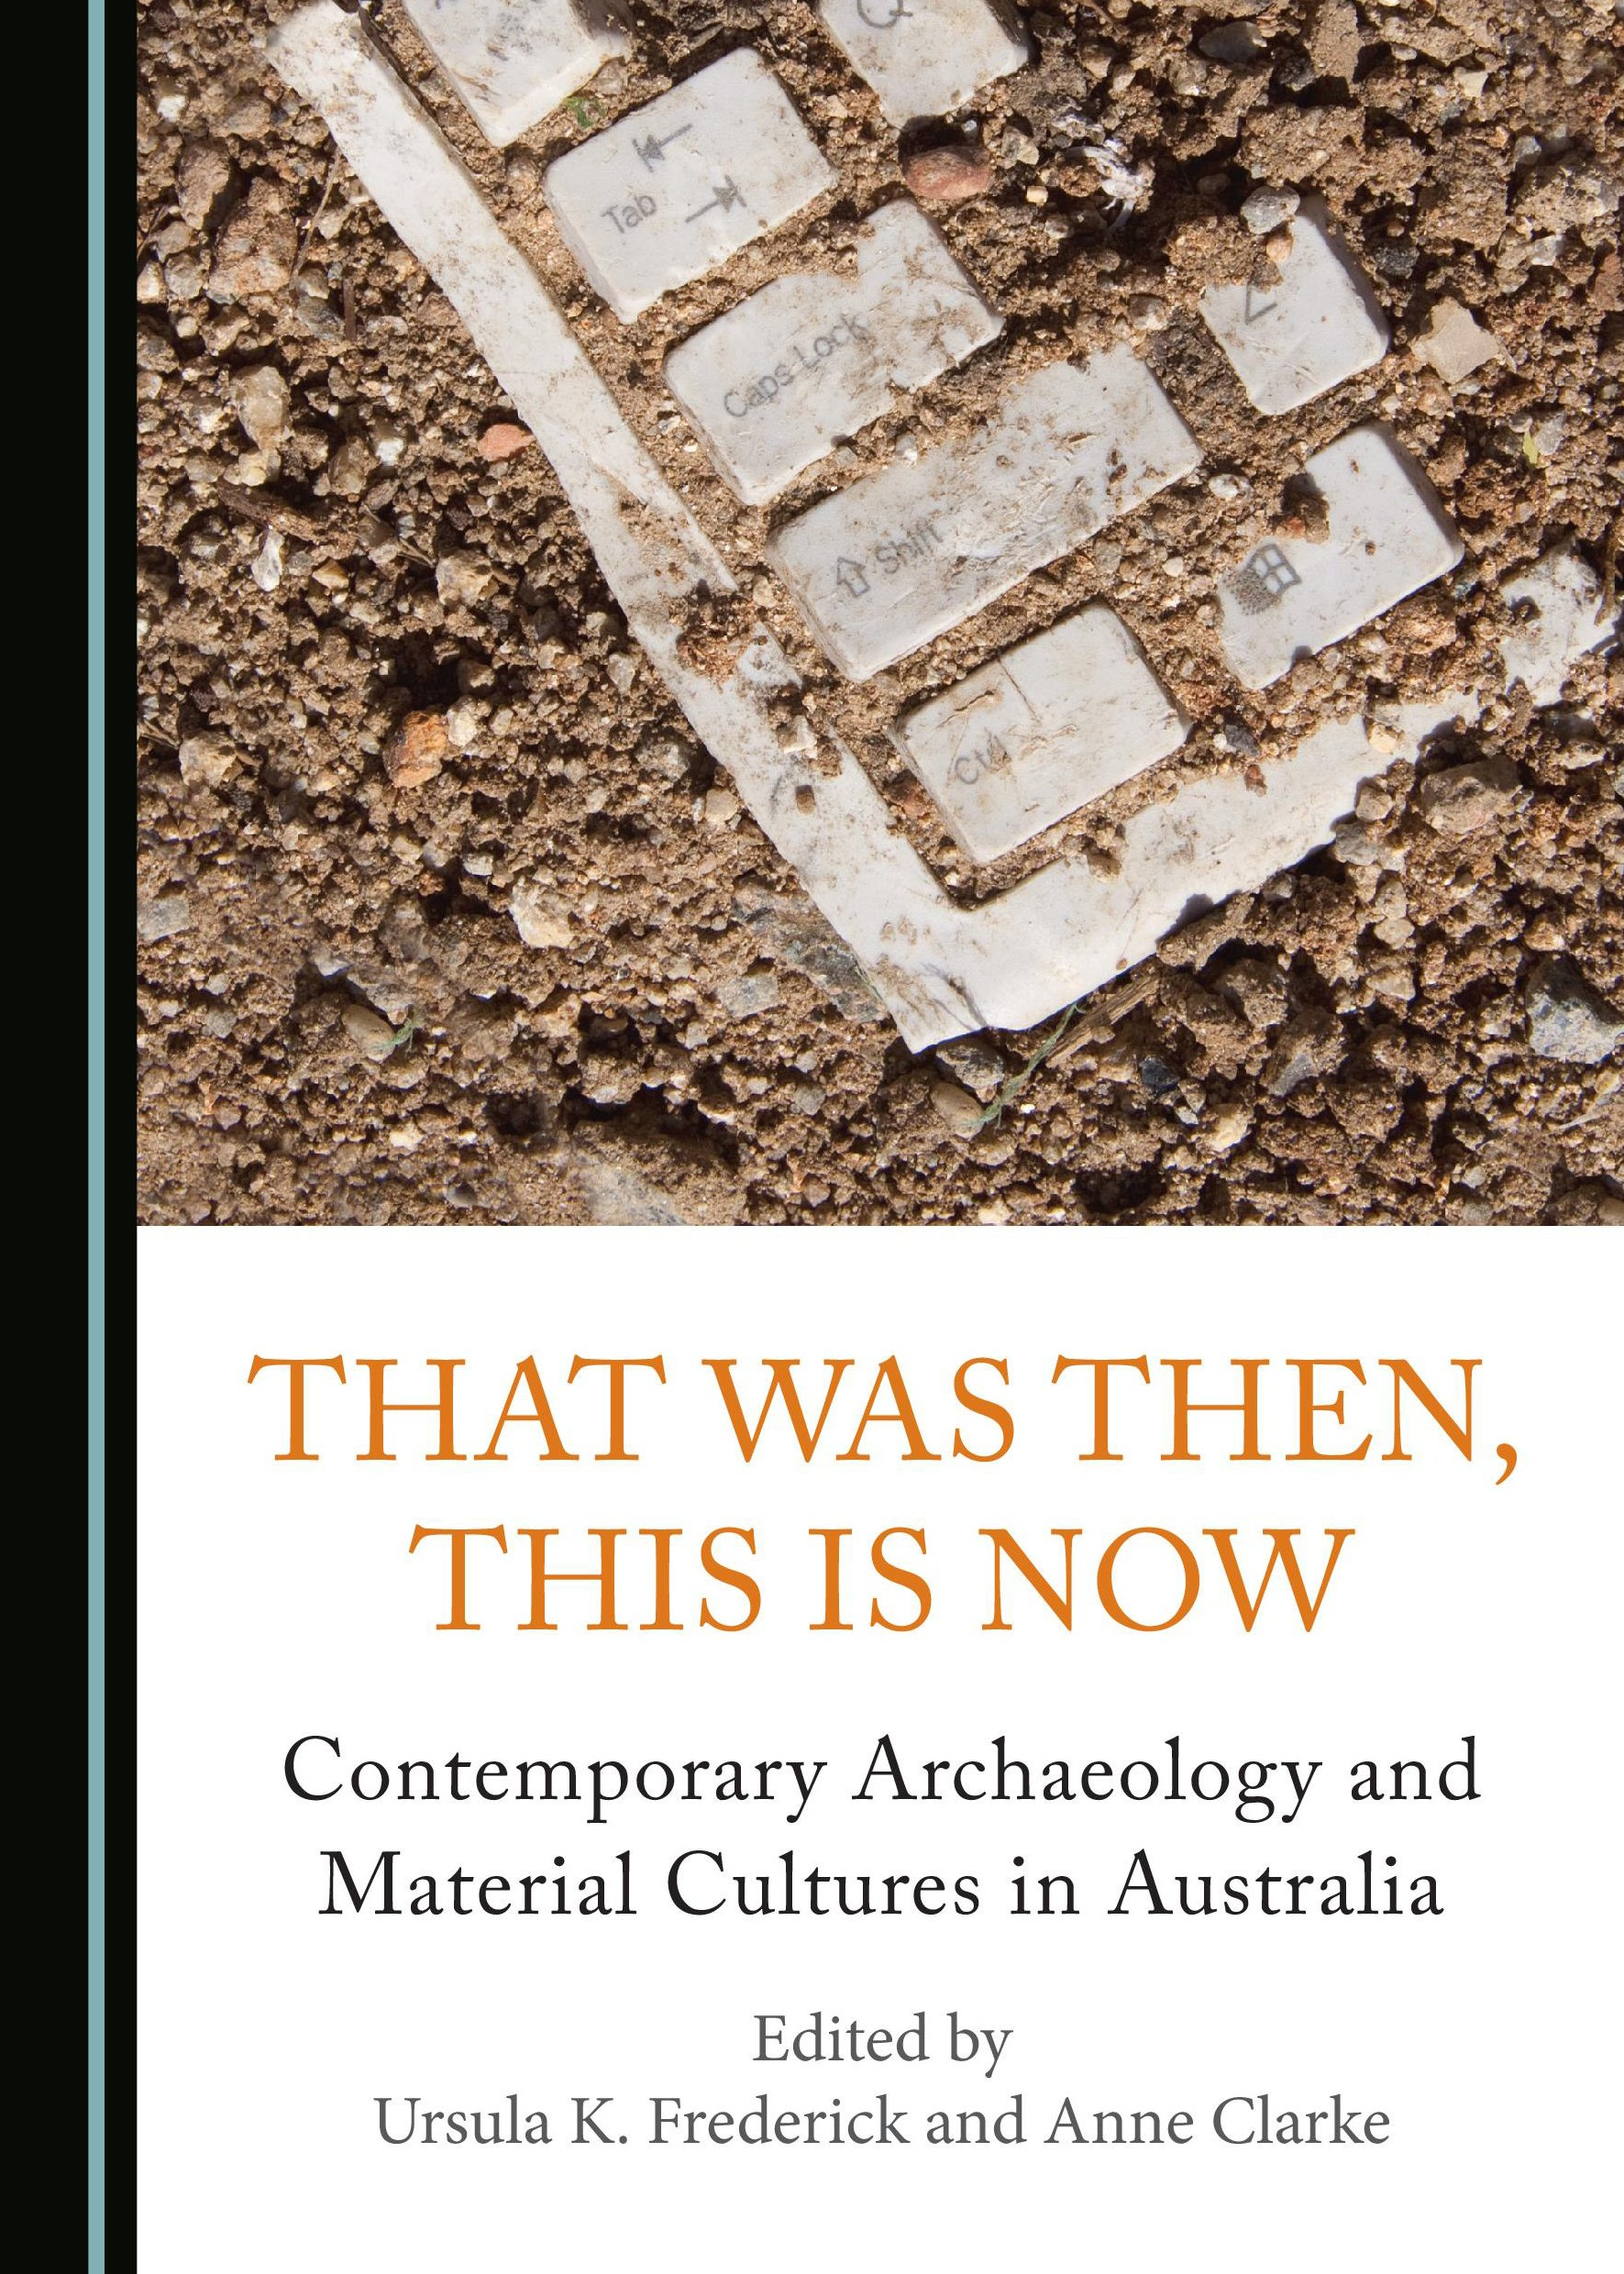 That Was Then, This Is Now: Contemporary Archaeology and Material Cultures in Australia